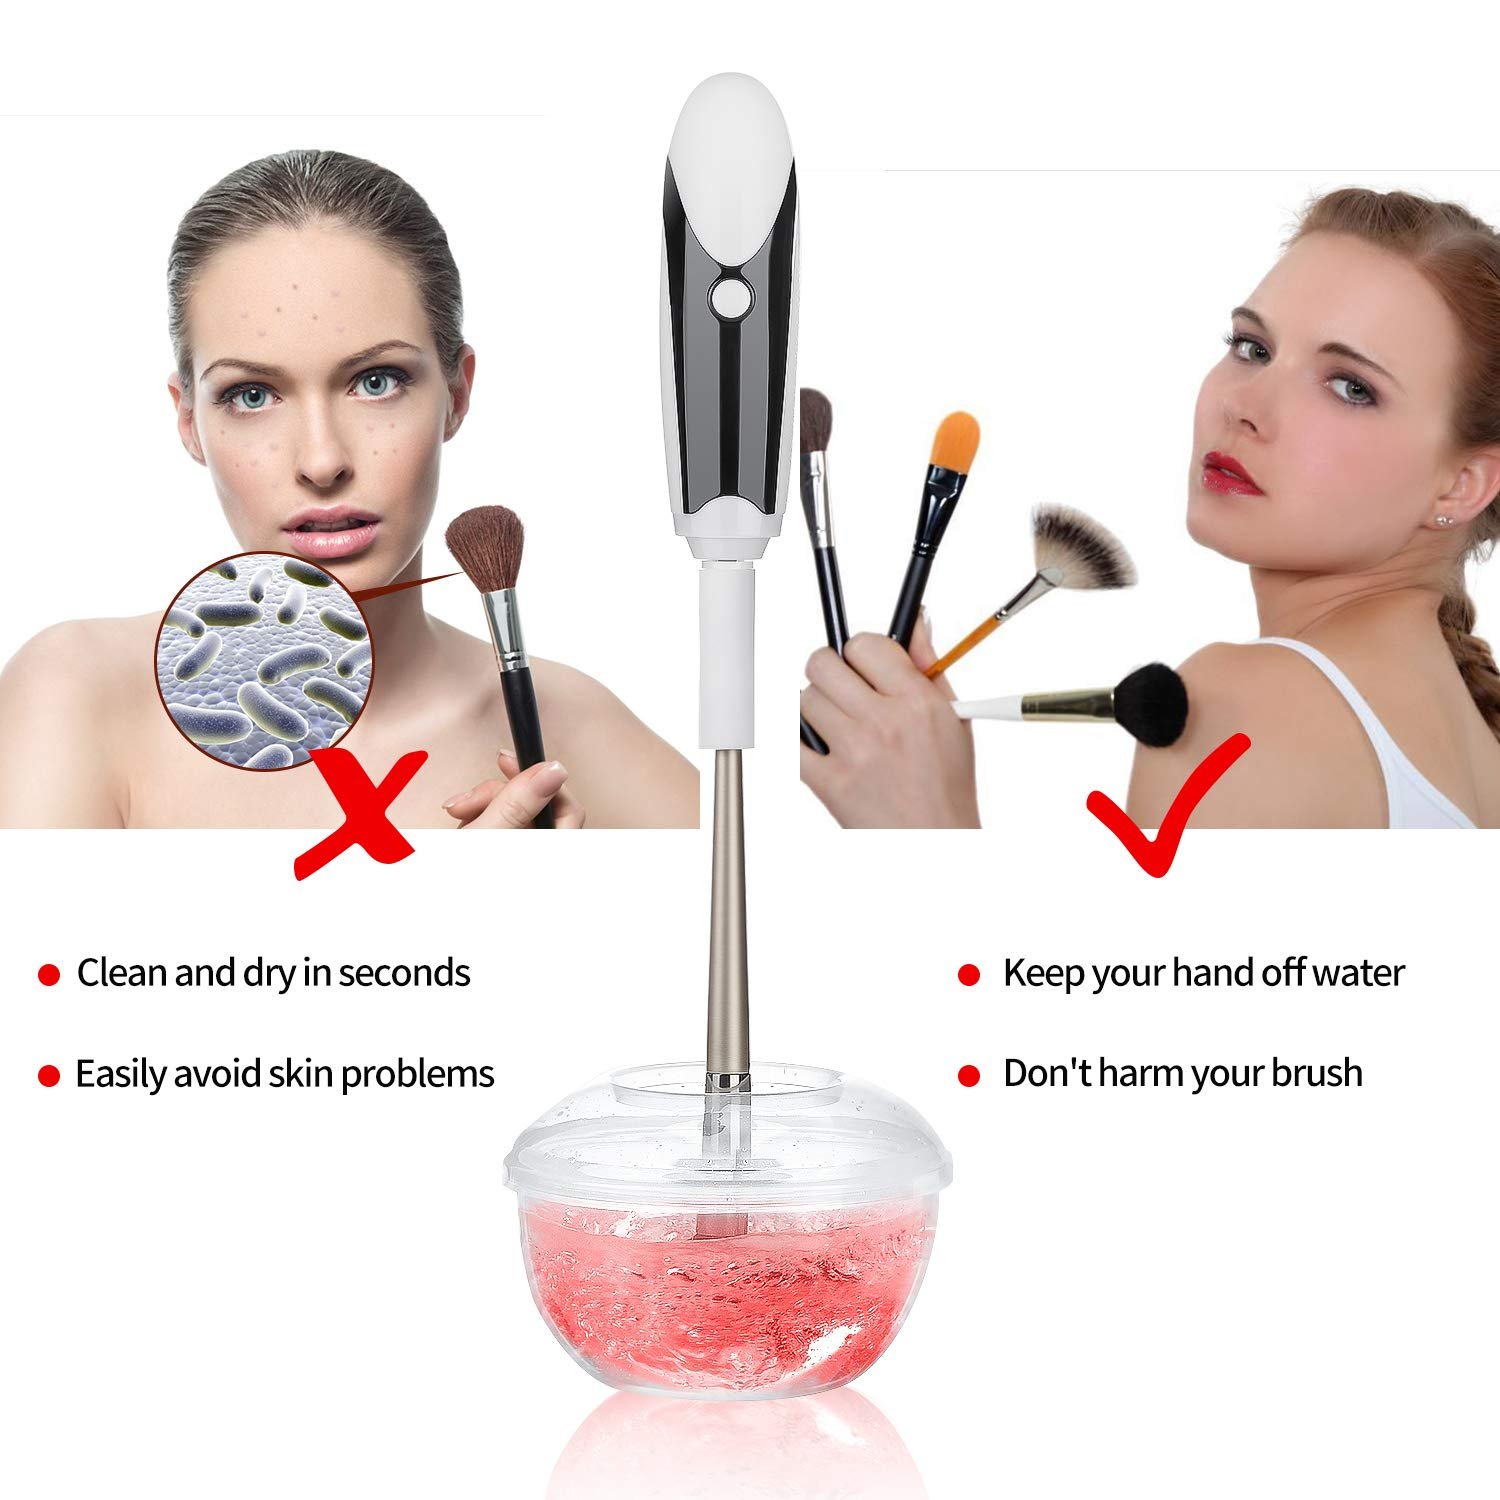 Electric Makeup Brush Cleaner and Dryer Spinner with 6 Rubber Holders, Automatic Brushes Cleaner Machine Kit - Quick, Easy and Effortless Way to Deep Cleans Dries All Makeup Brushes in Seconds